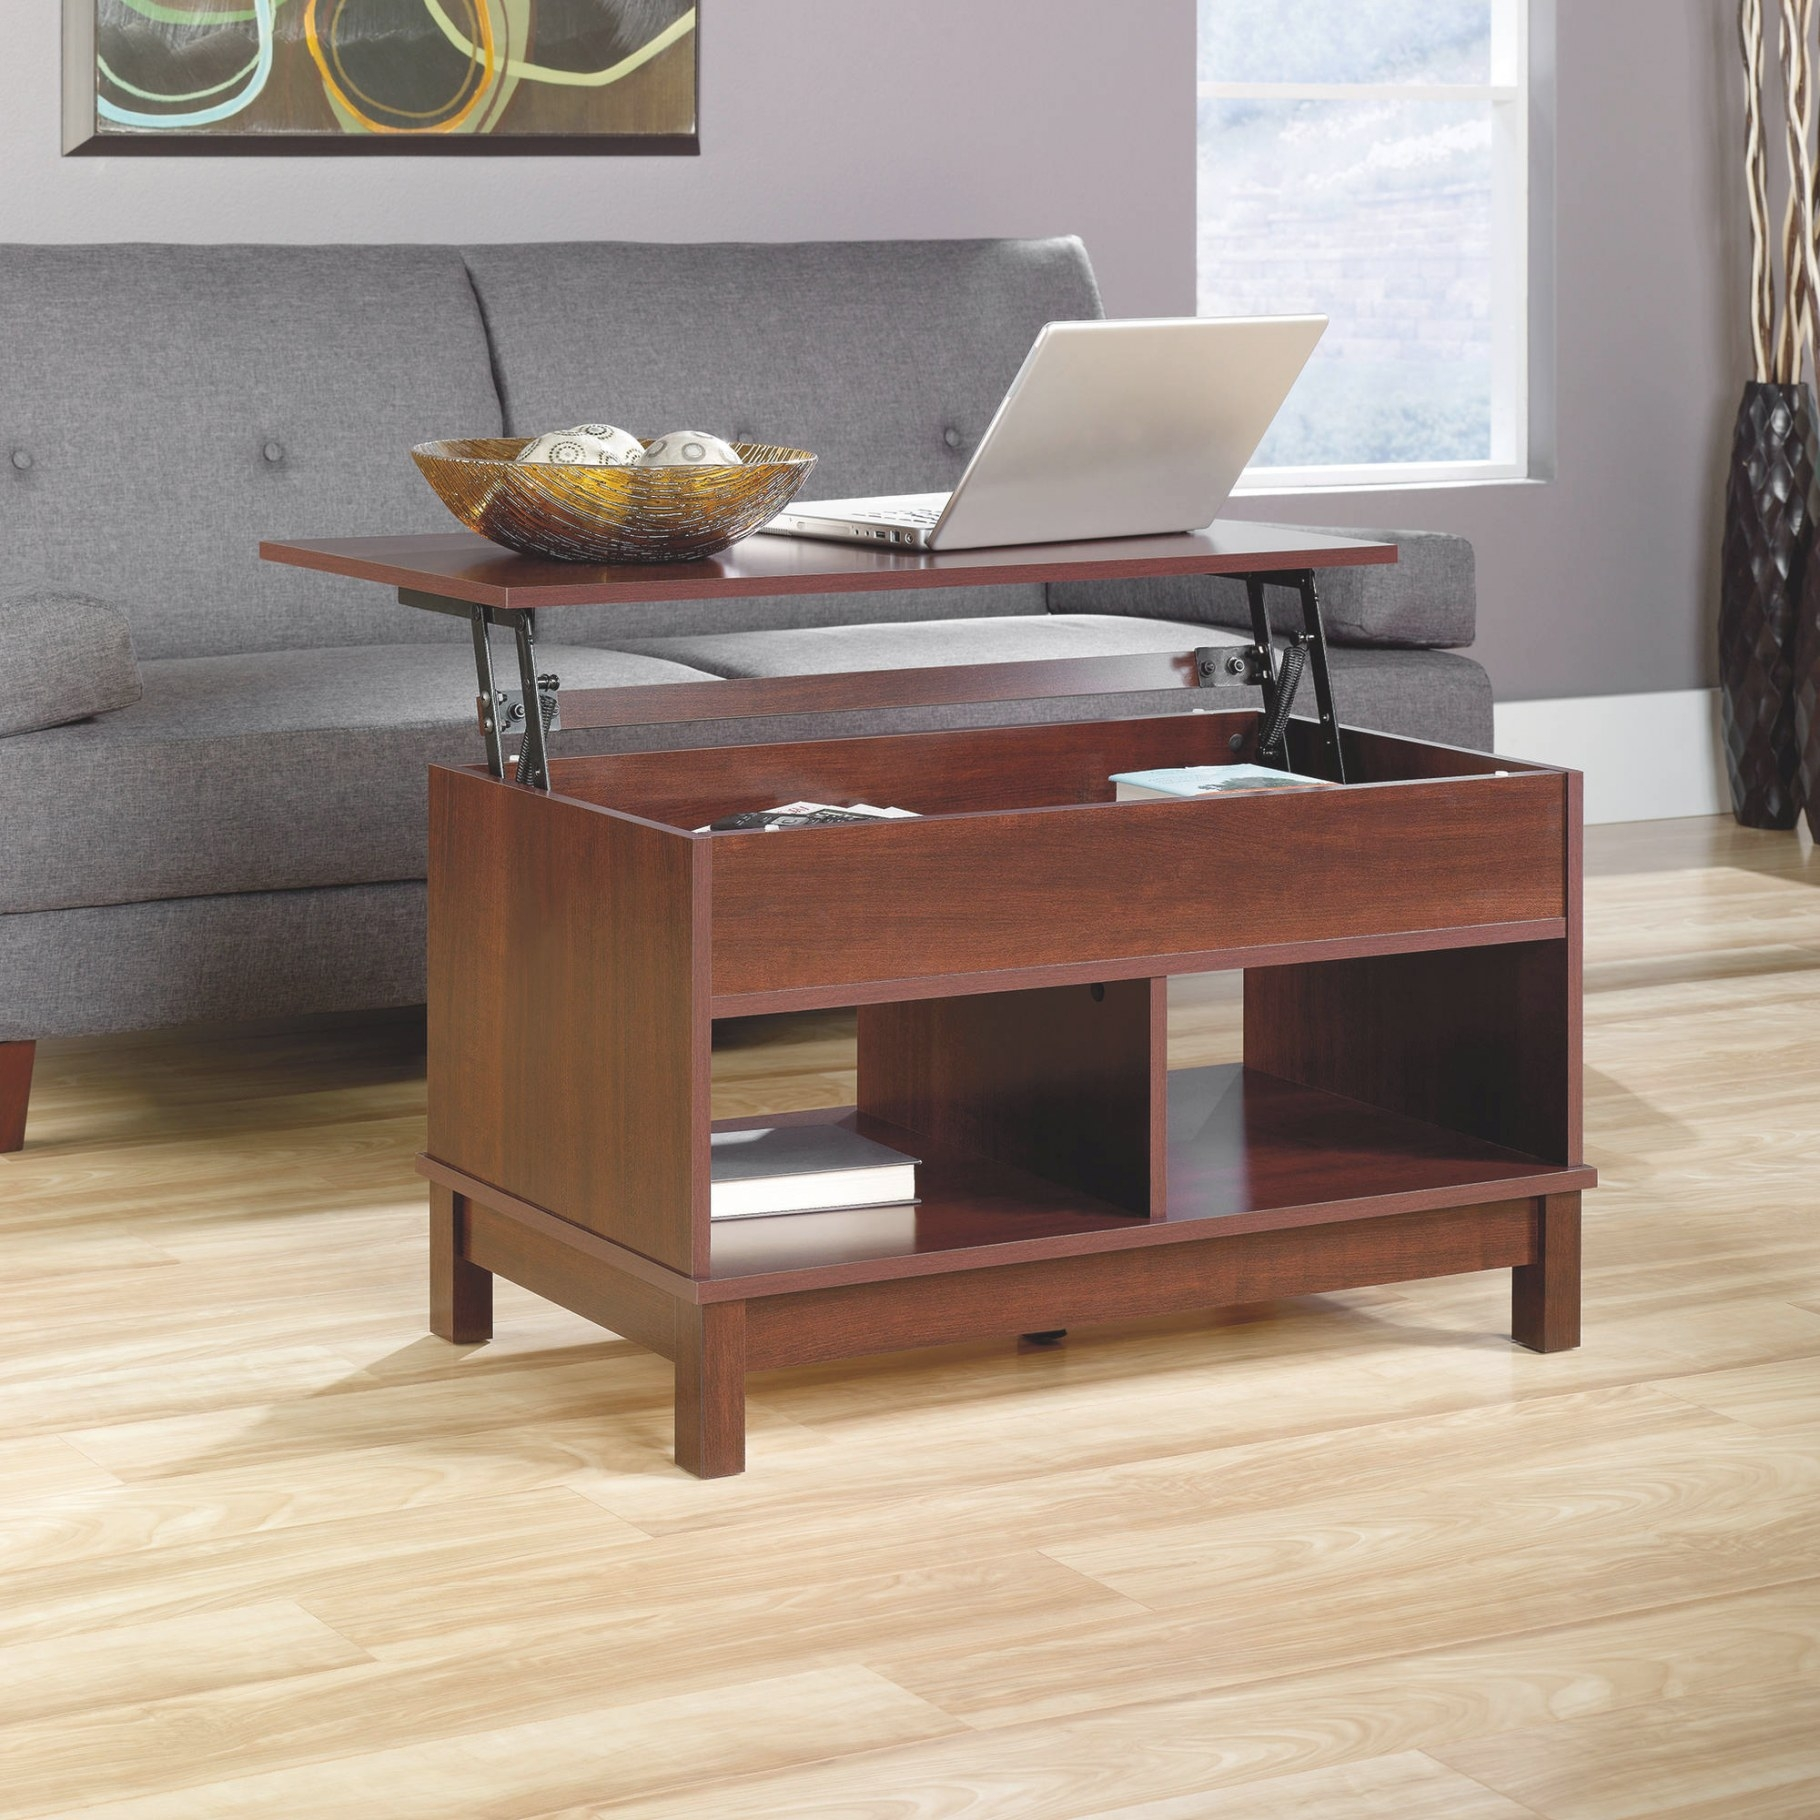 Lift Top Coffee Tables With Storage | Roy Home Design within Lift Top Coffee Tables